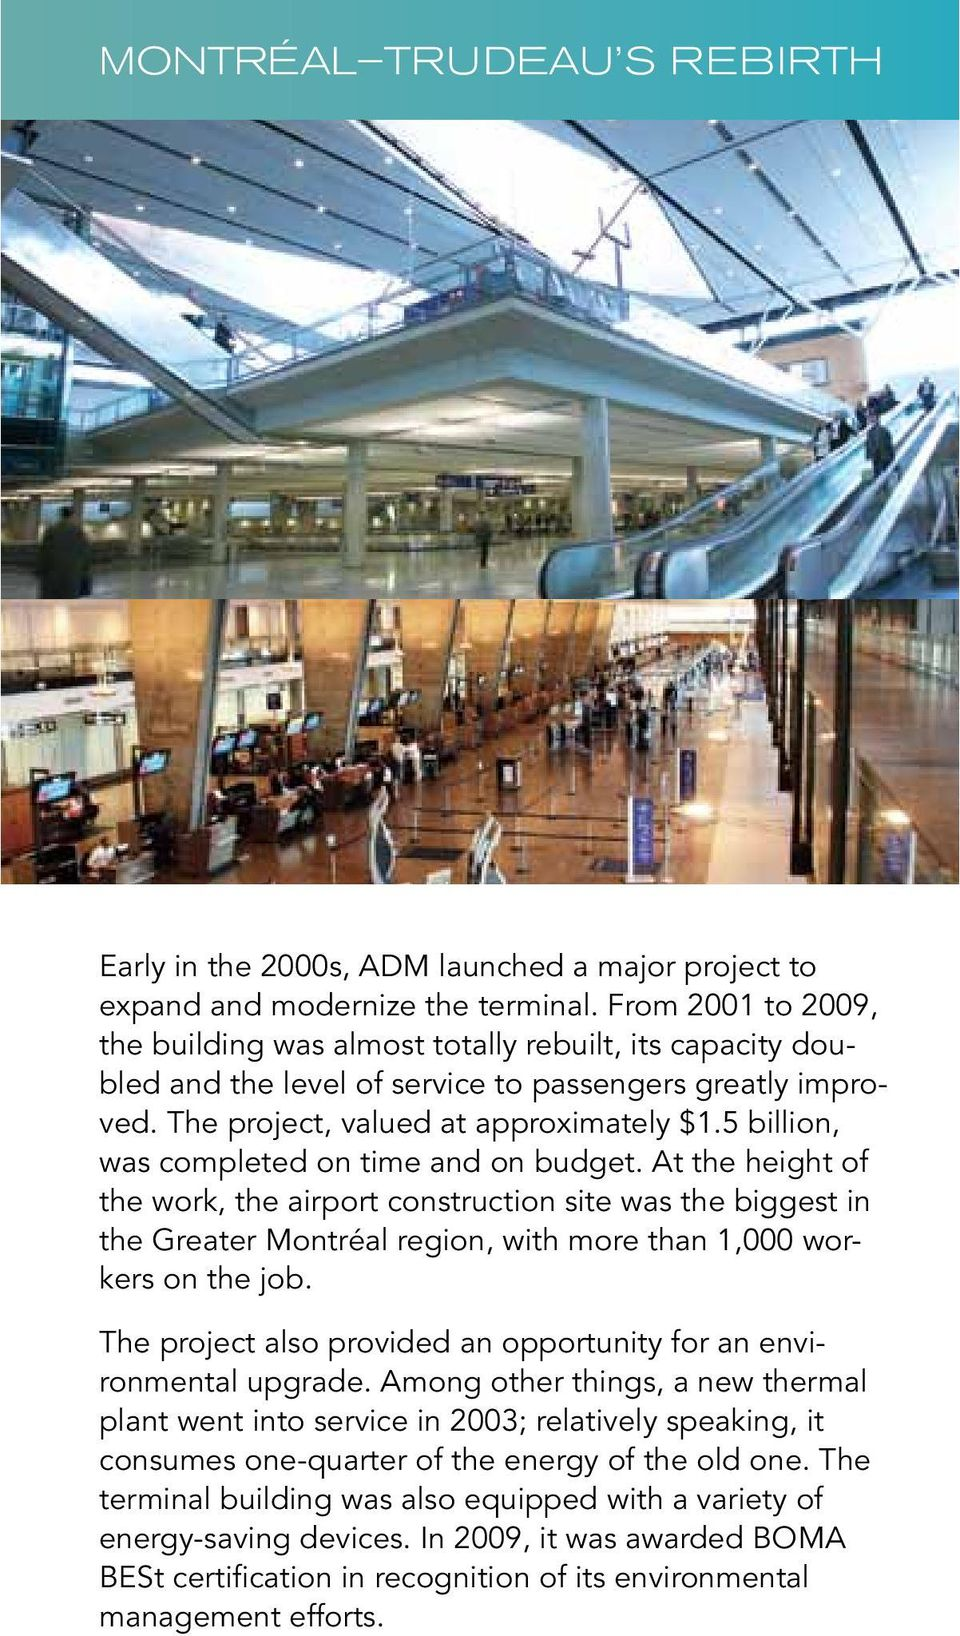 5 billion, was completed on time and on budget. At the height of the work, the airport construction site was the biggest in the Greater Montréal region, with more than 1,000 workers on the job.